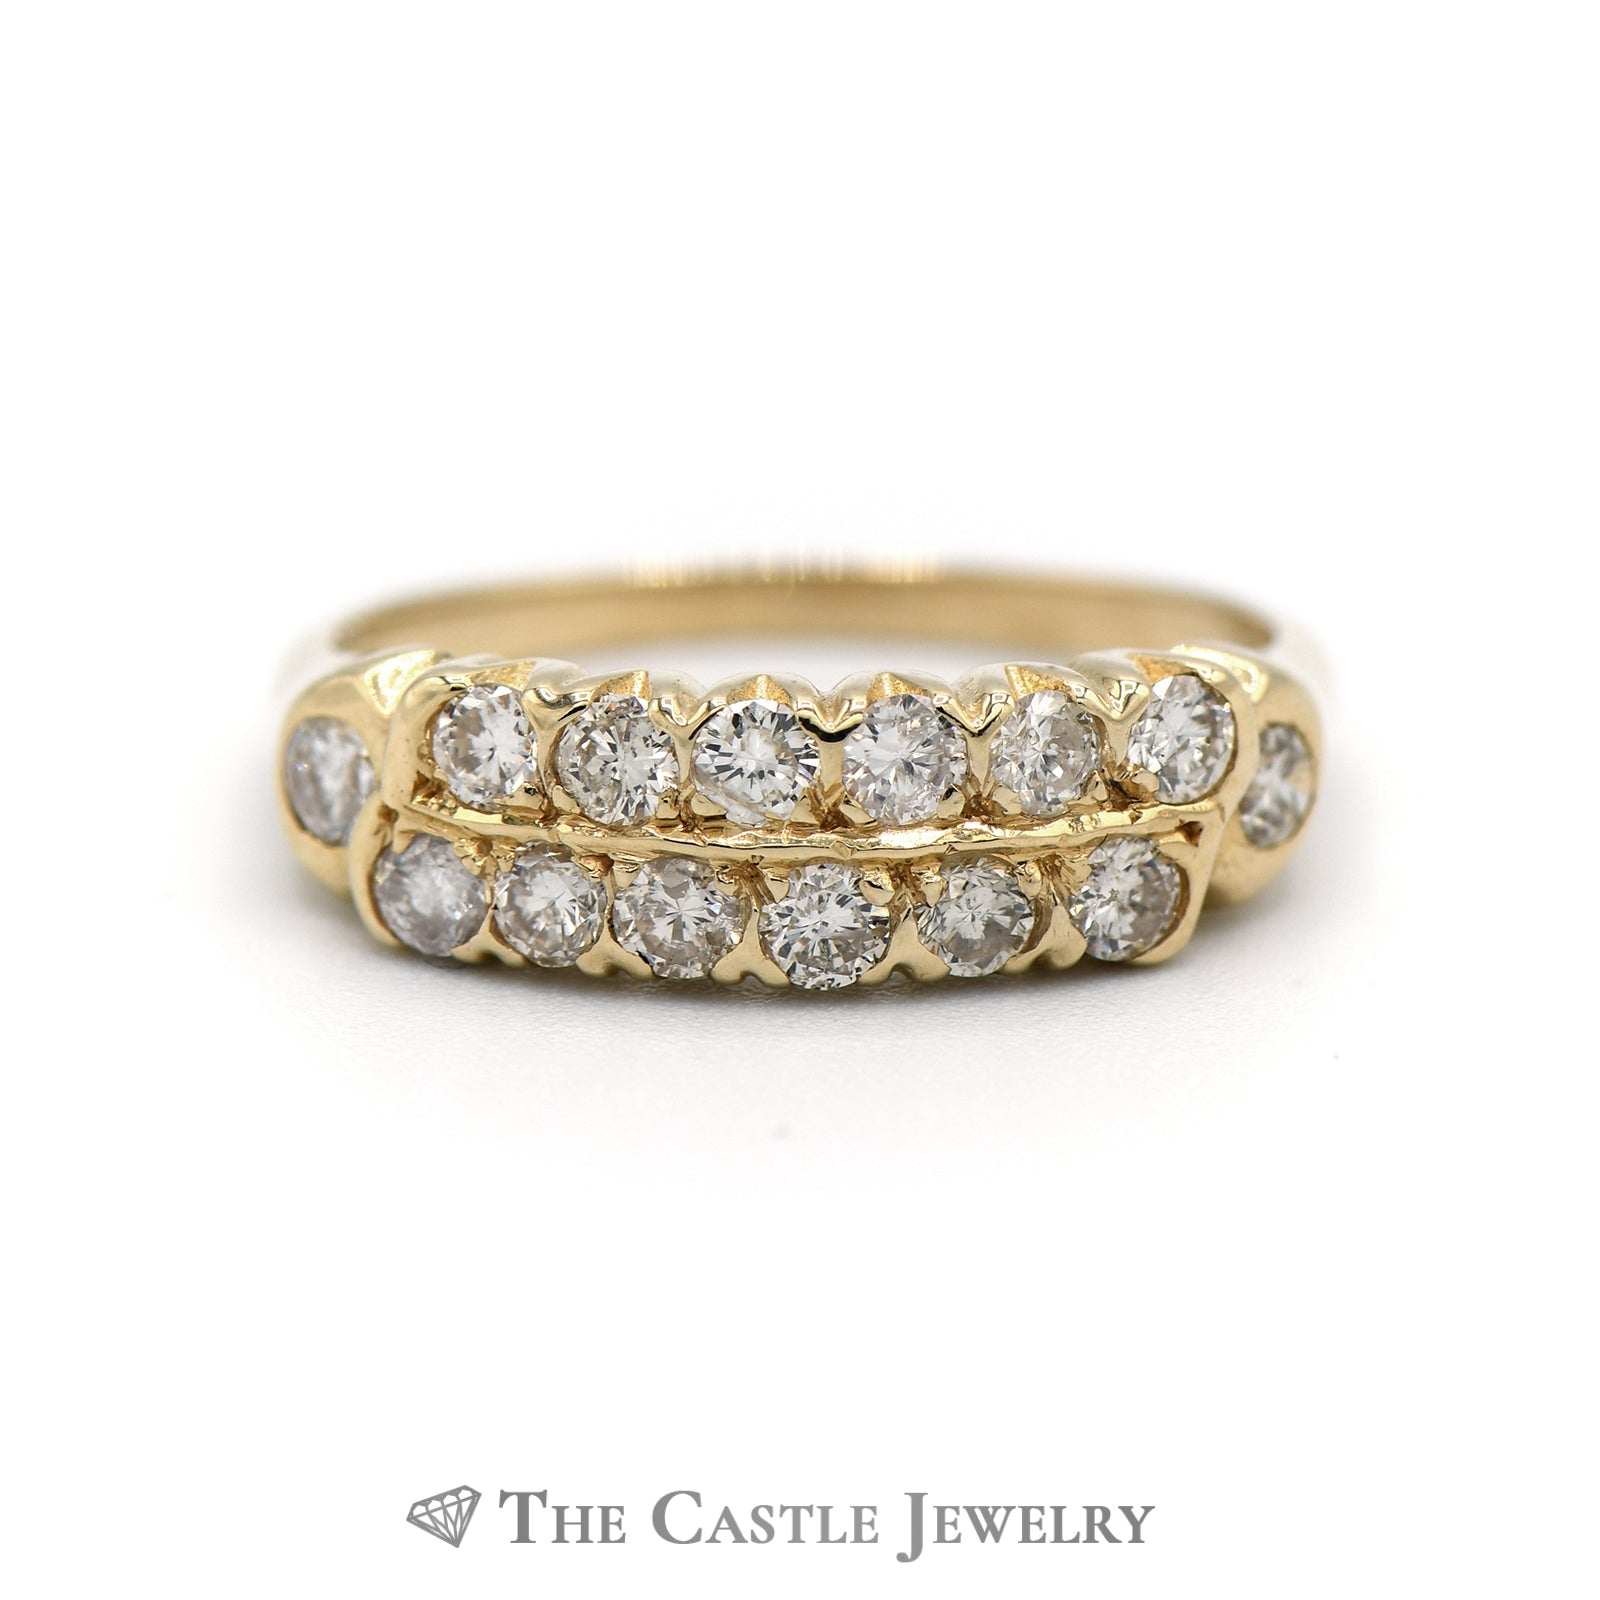 Double Row Round Diamond Ring with Single Diamond Accents on Side in 14K Gold